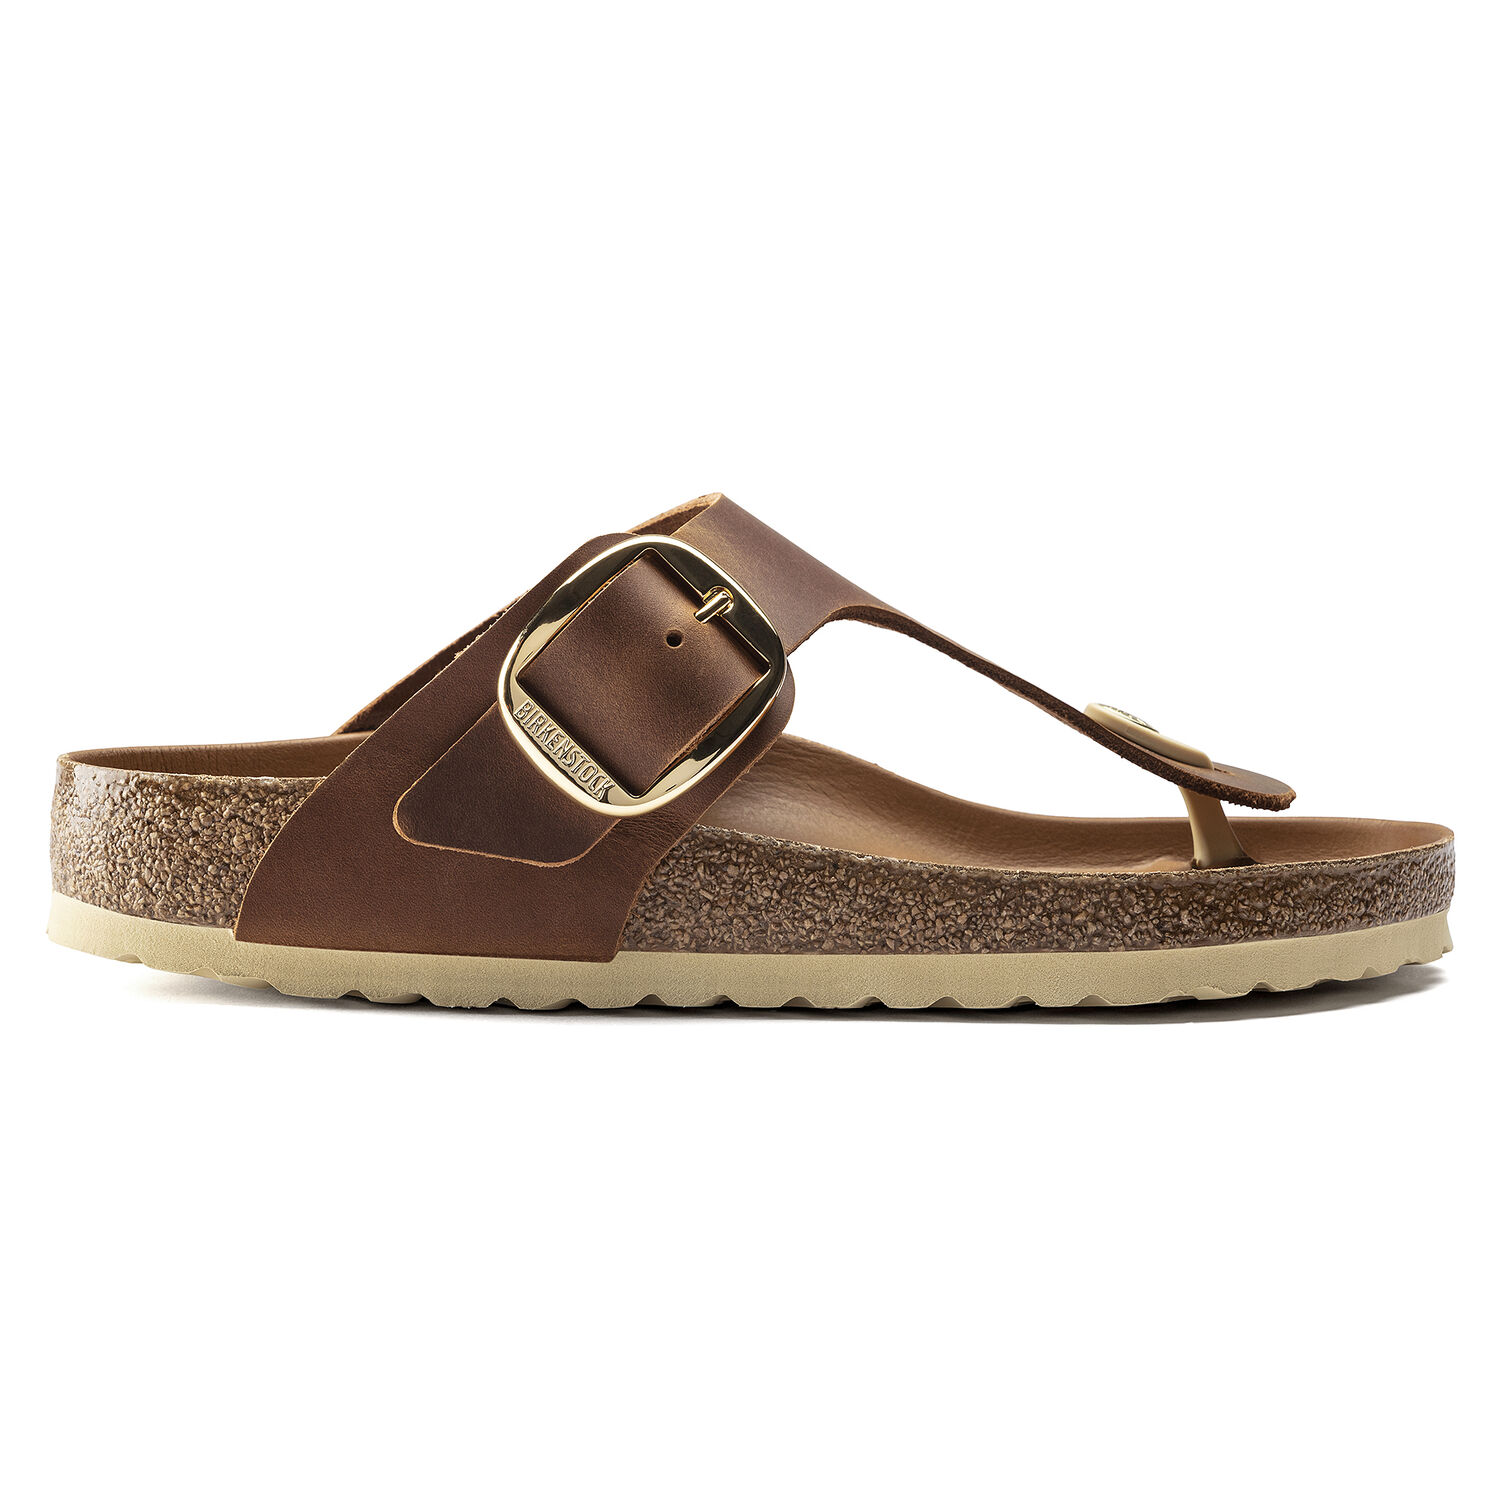 Gizeh Big Buckle Natural Leather